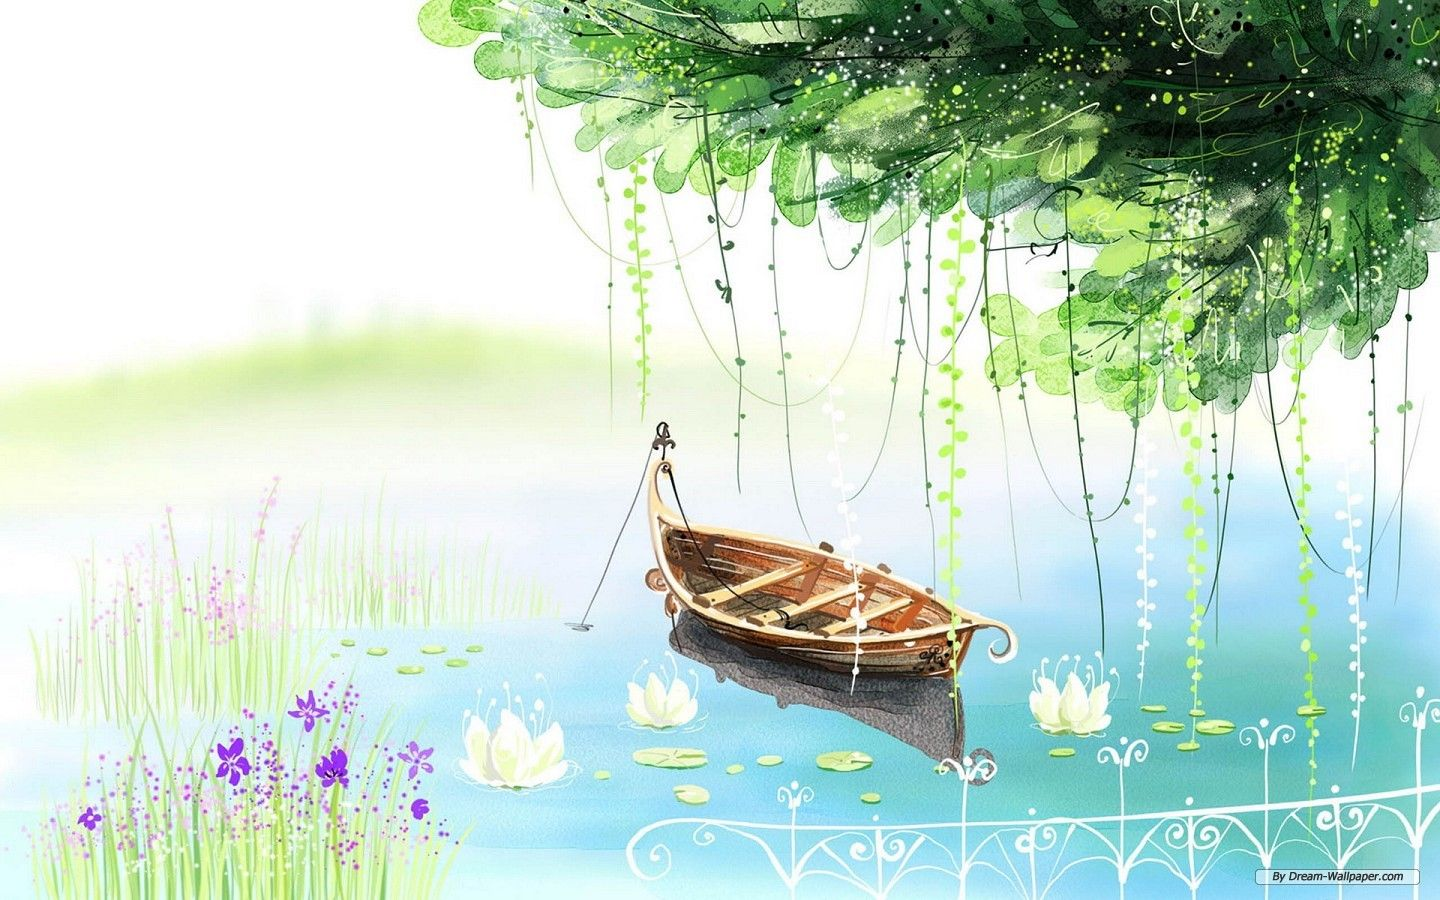 Free Art Wallpaper Drawing Beautiful Scenery Computer 7 Wallpaper 1440x900 Wallpaper Index 3 Art Art Wallpaper Painting